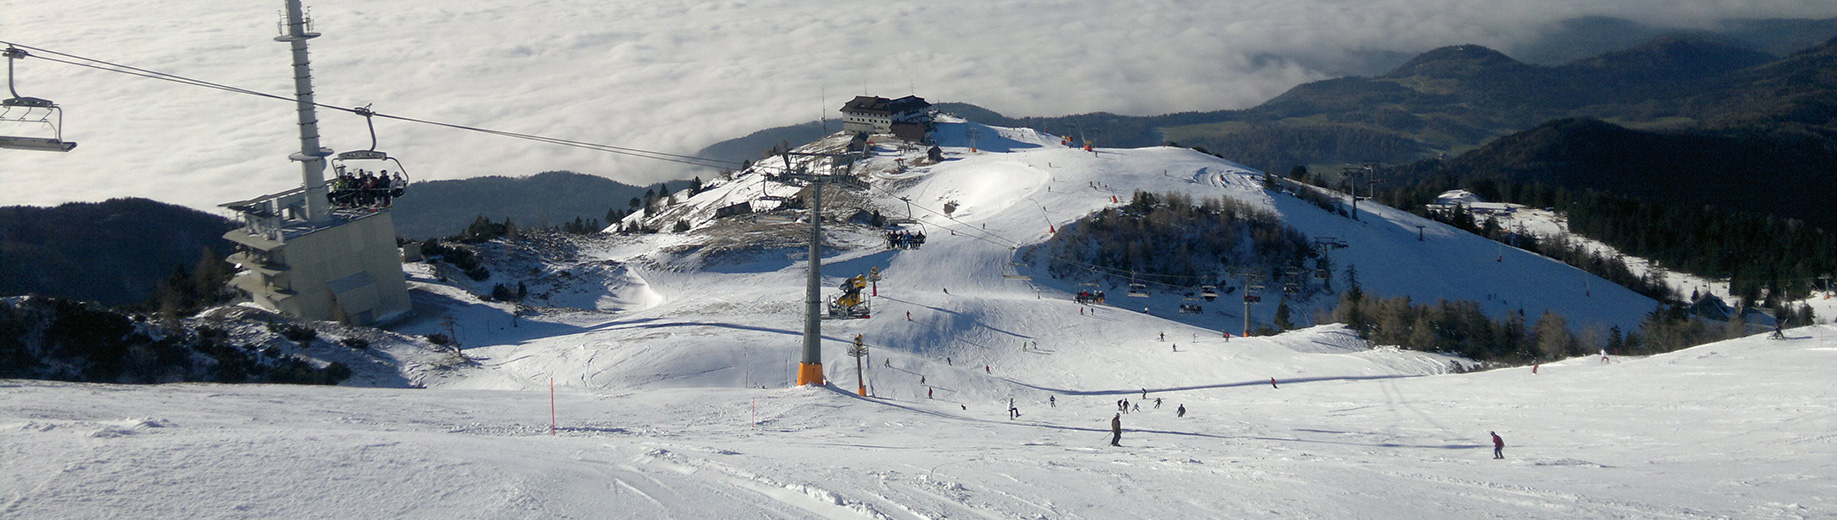 Skiing at Krvavec